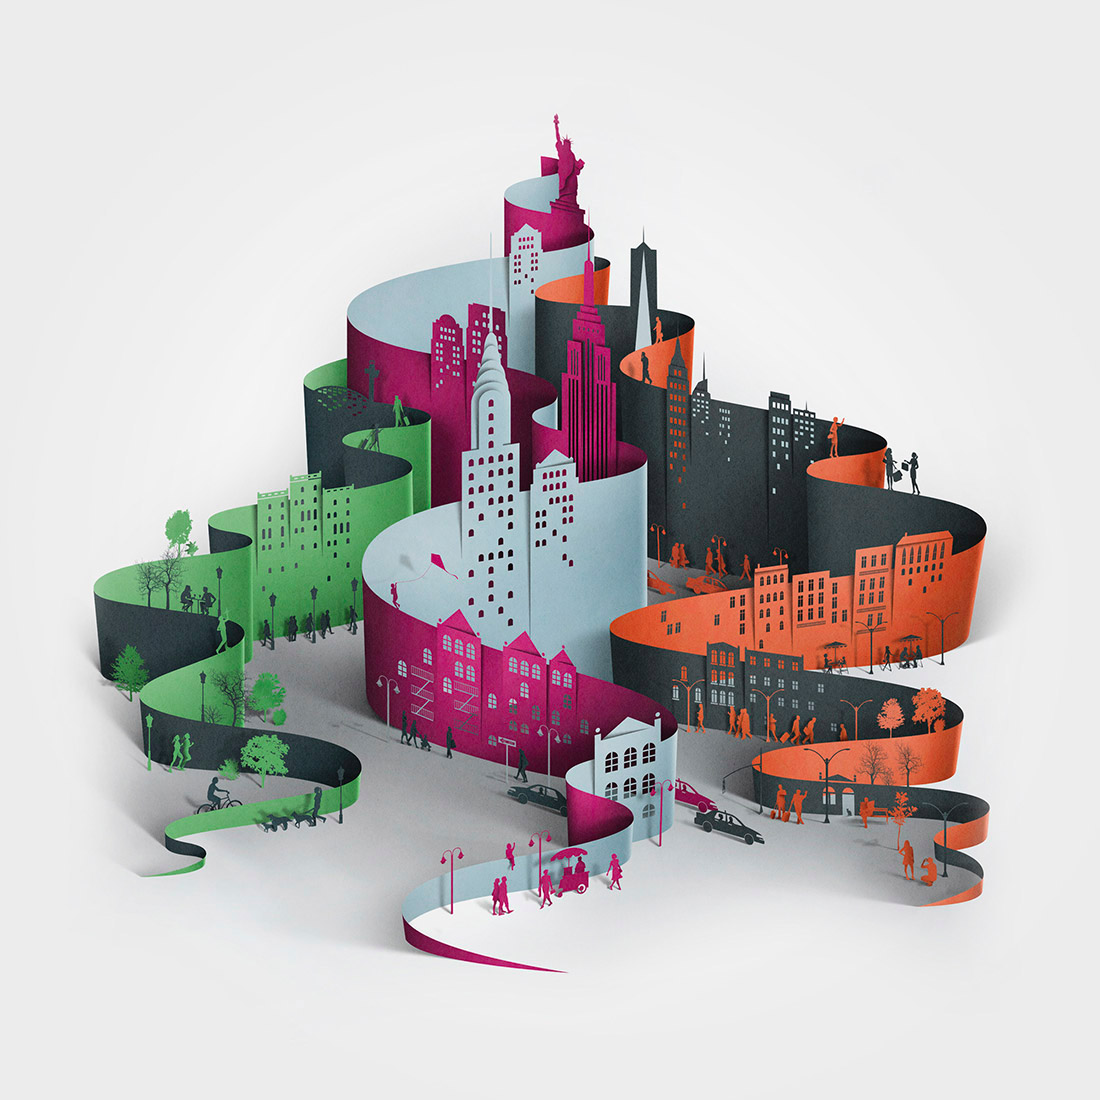 New Illustrations by Eiko Ojala